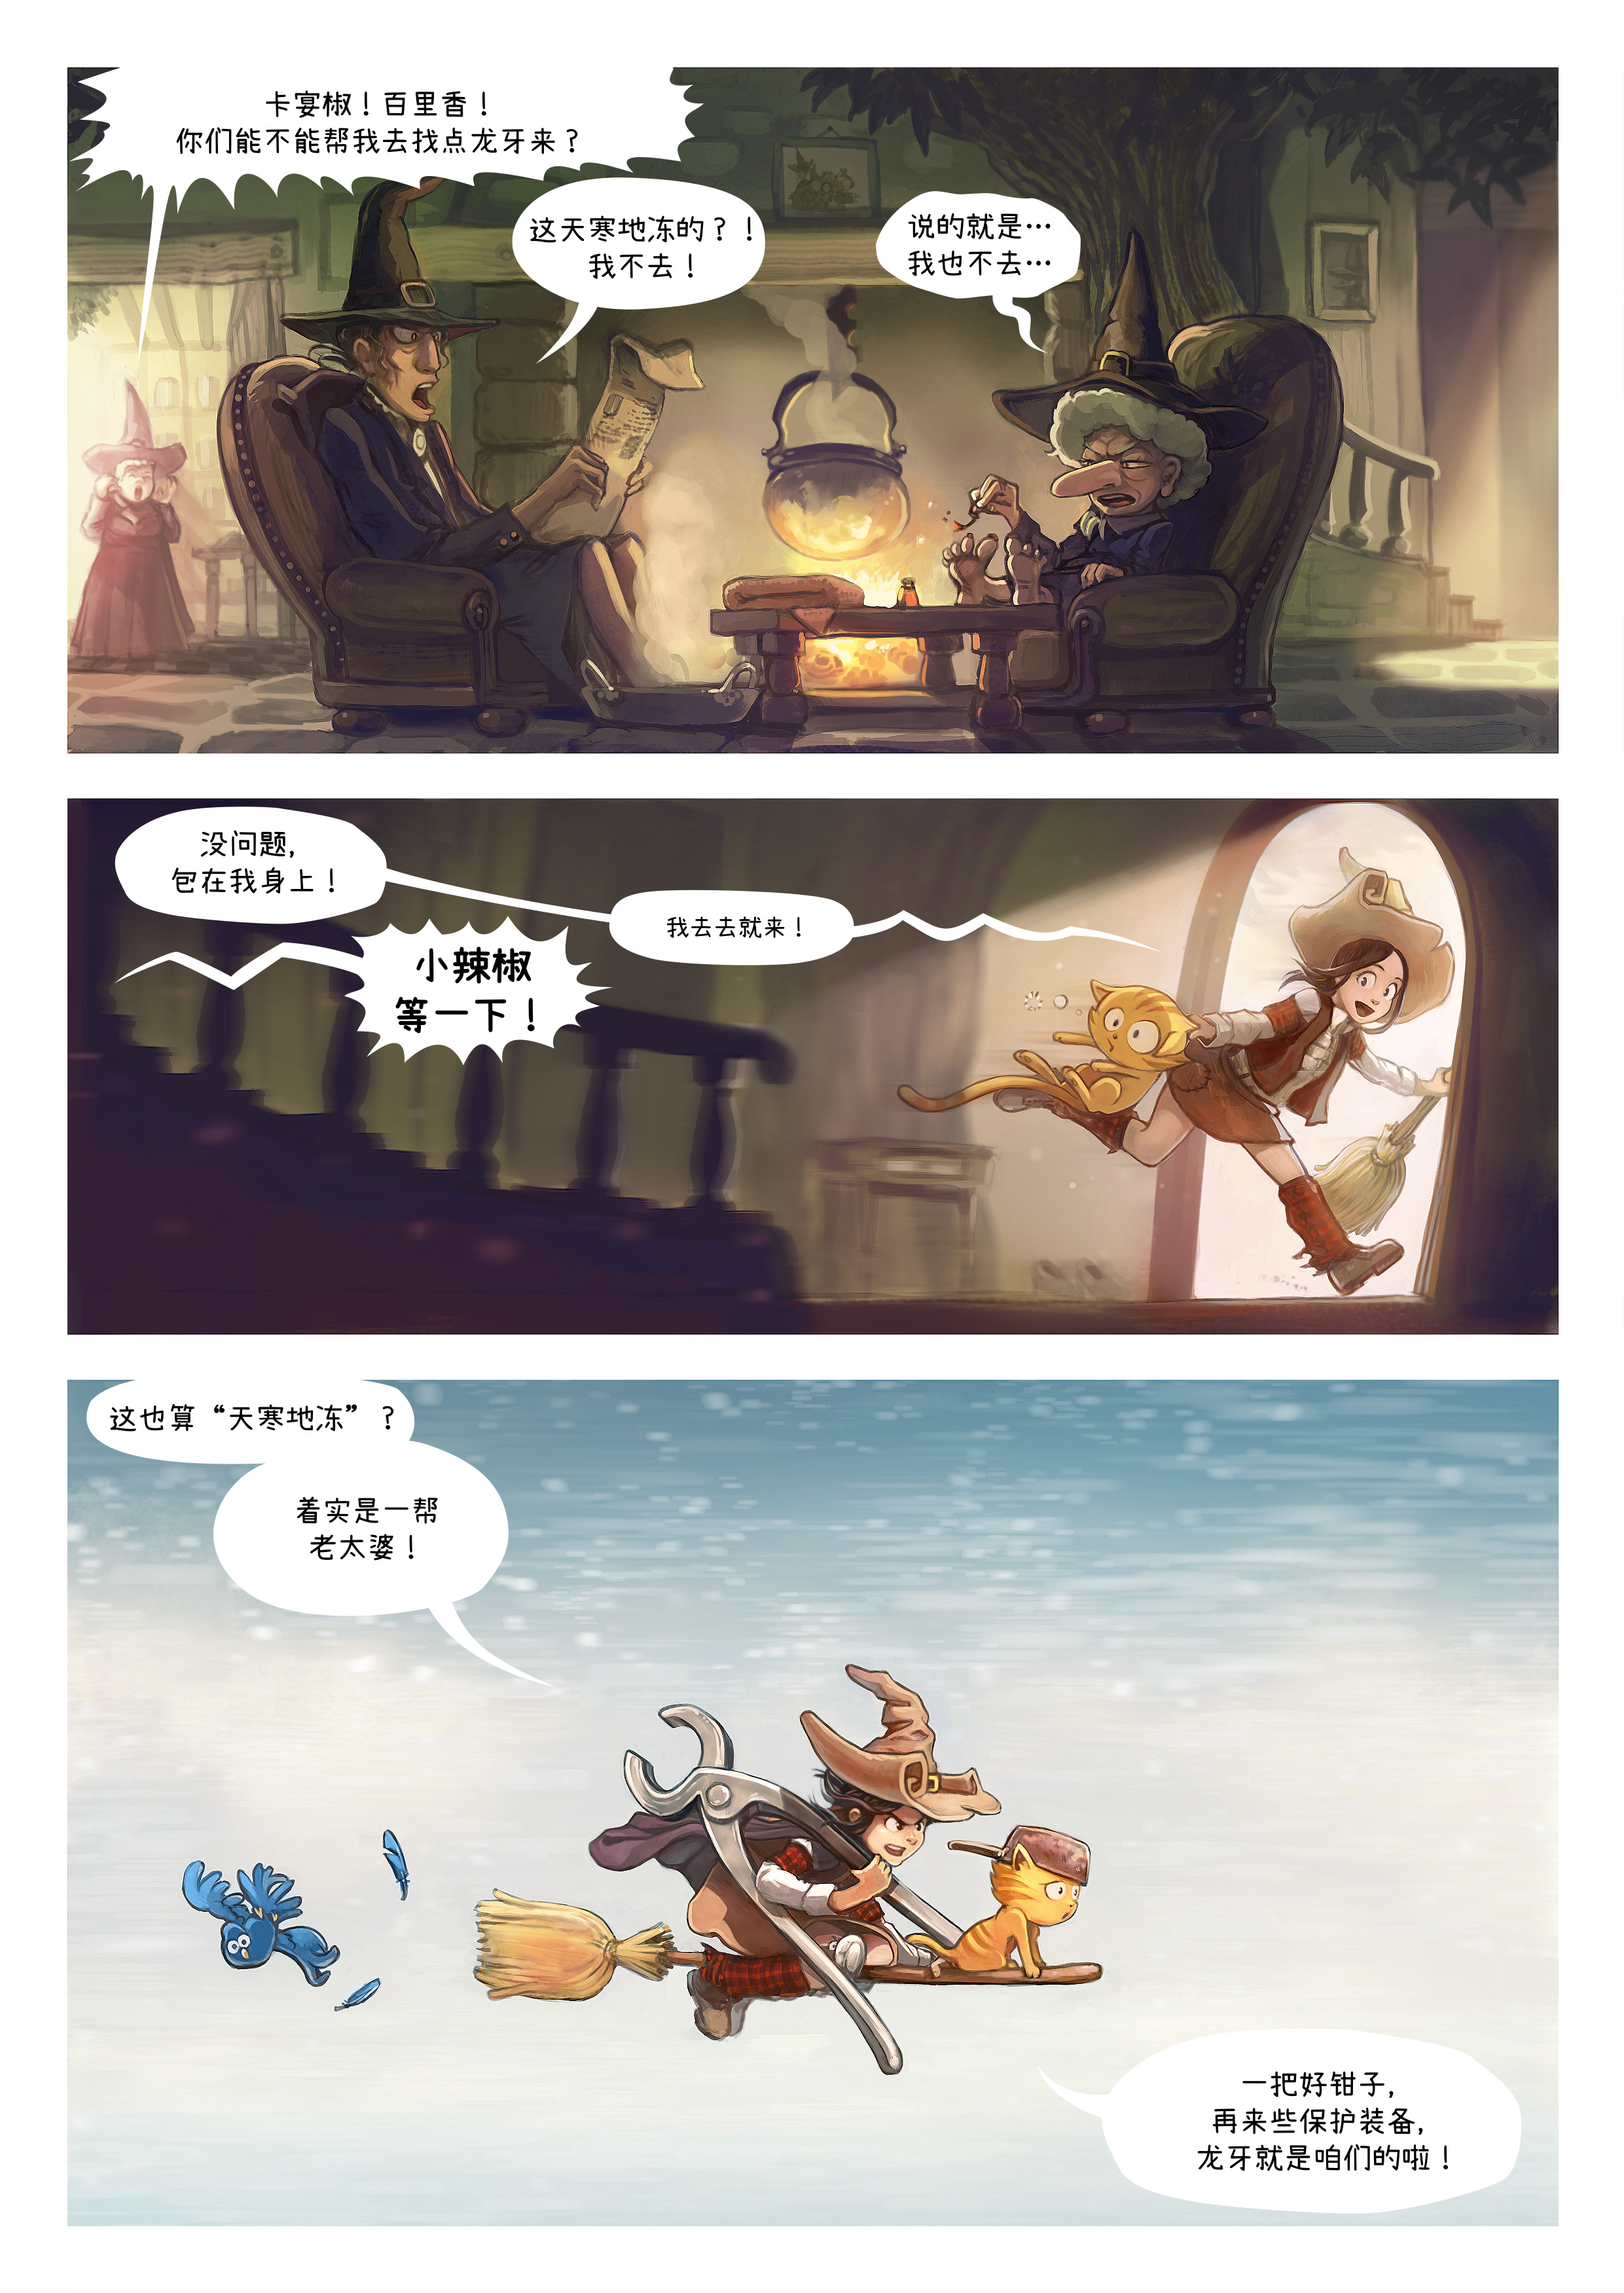 A webcomic page of Pepper&Carrot, 漫画全集 14 [cn], 页面 2